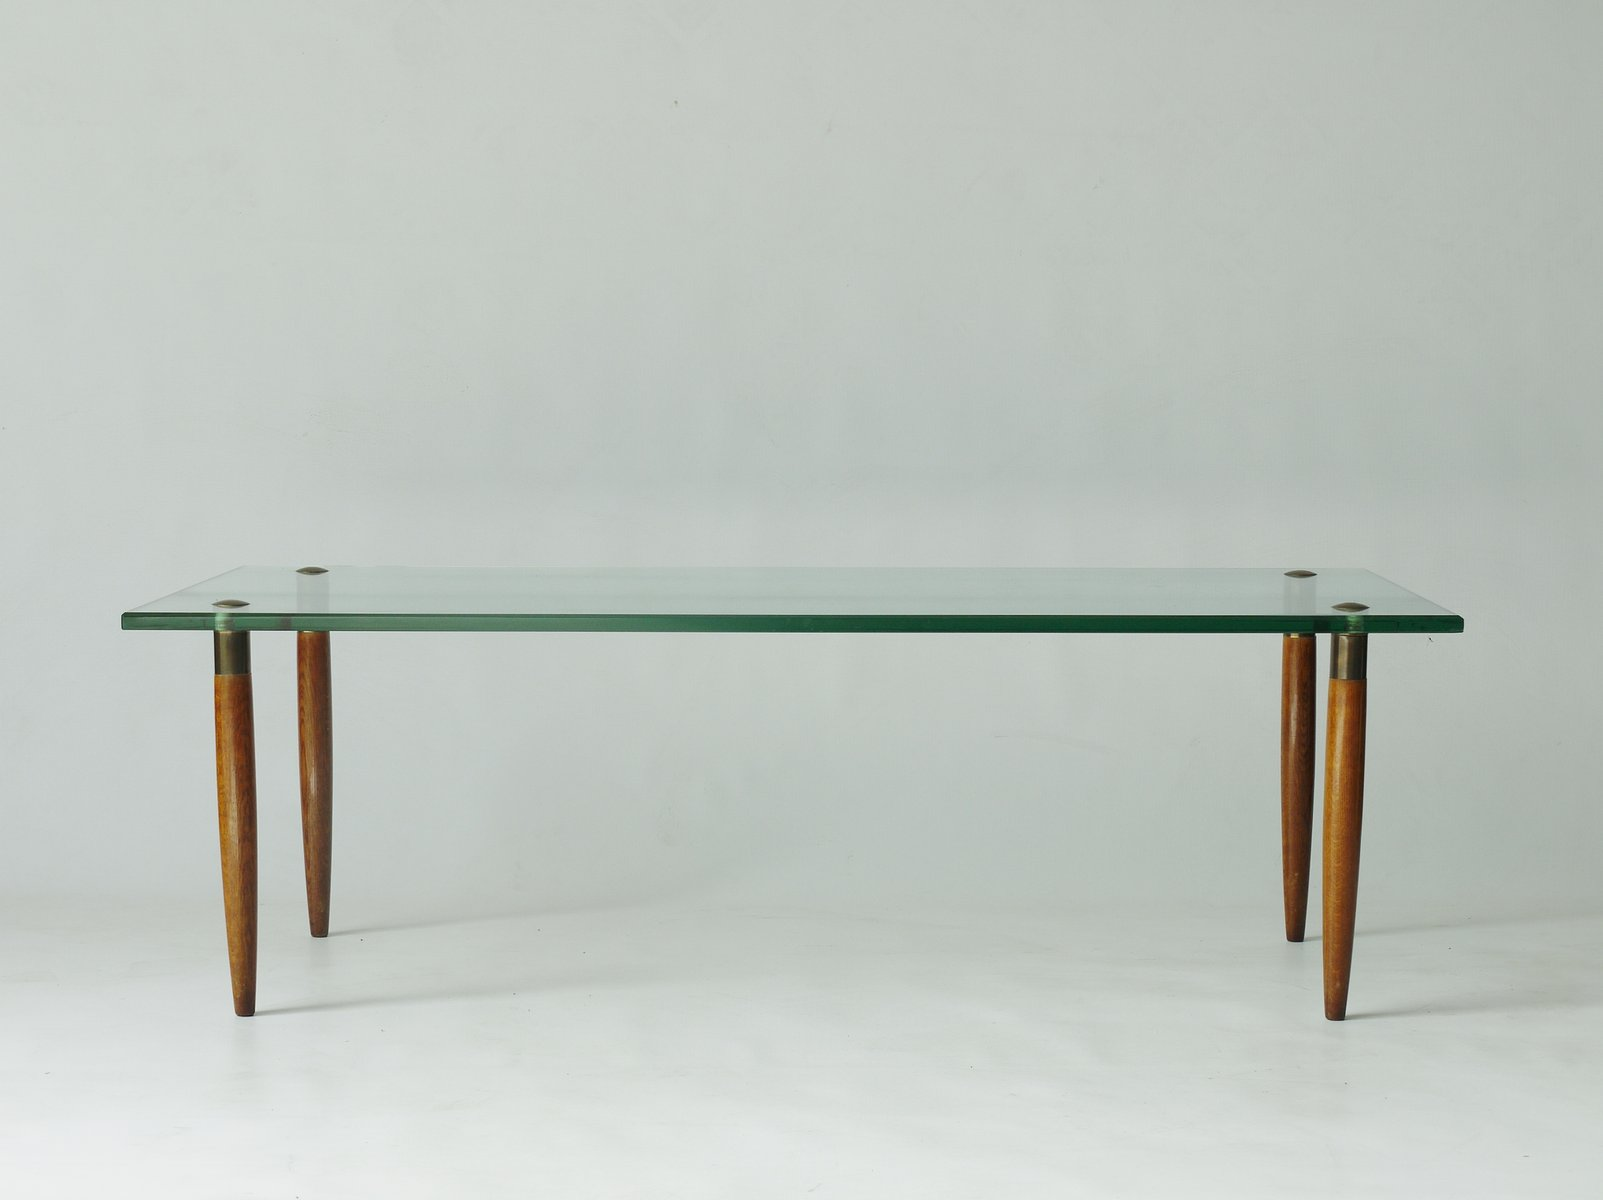 Walnut & Glass Coffee Table from Fontana Arte 1950s for sale at